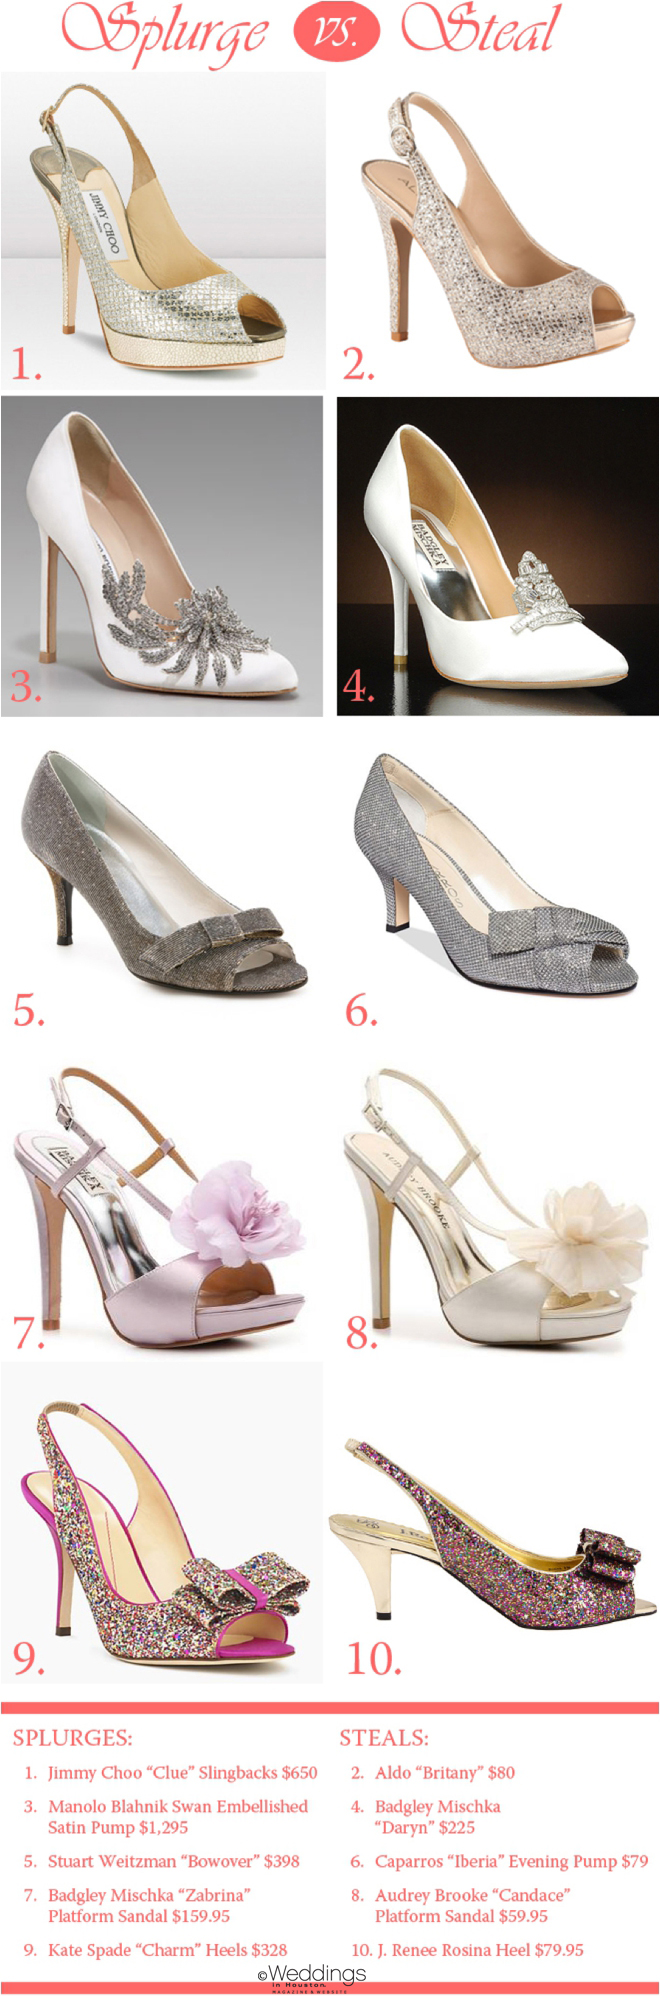 6def0a5ffa8e Manolo Blahnik Archives - Houston Wedding Blog